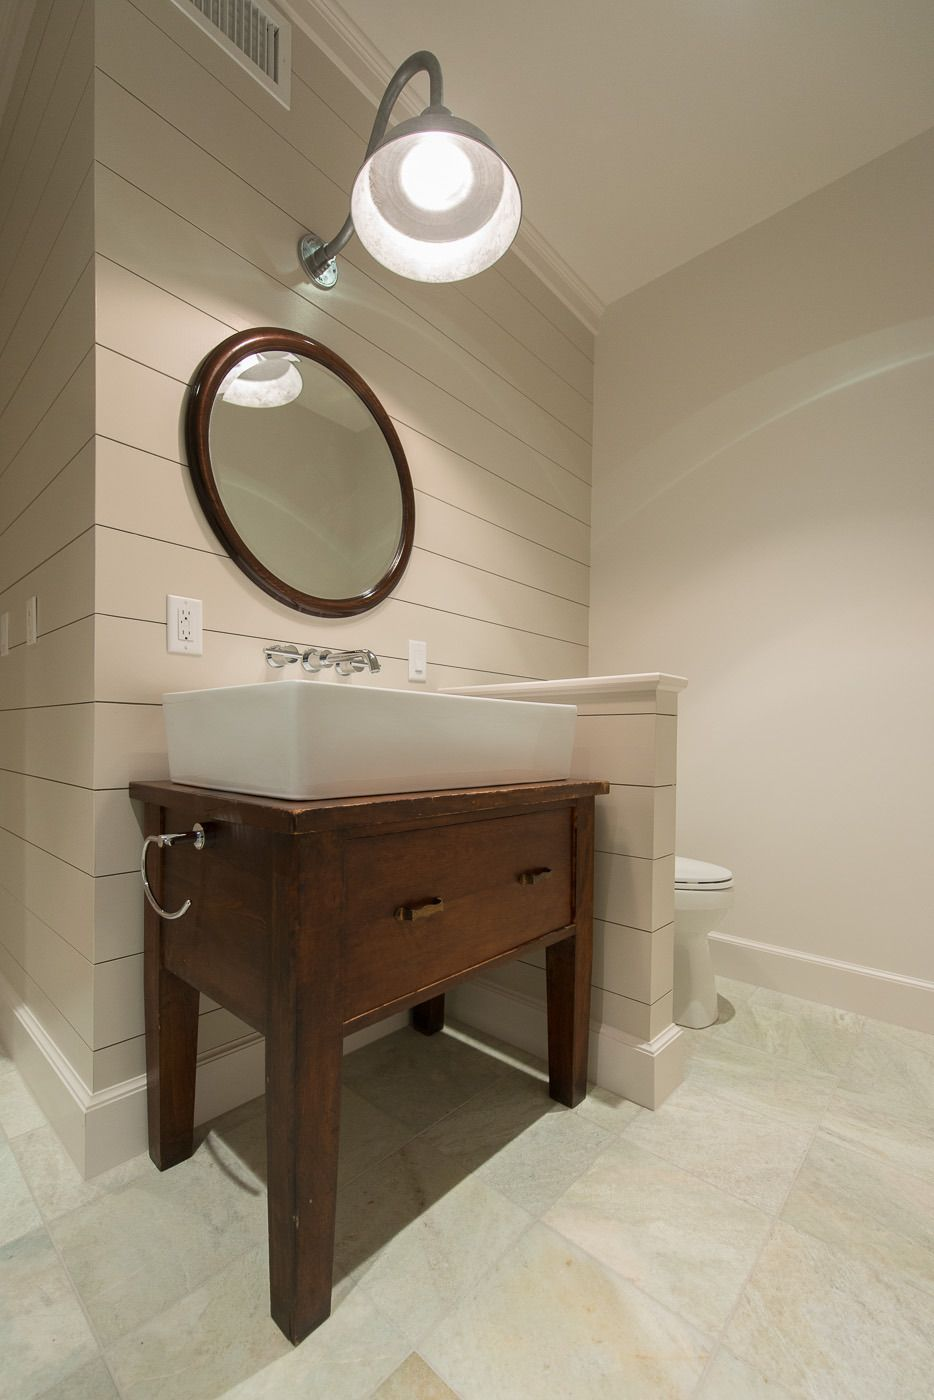 Upcycled Vanity Light : Upcycled bathroom vanity. Light from Barn Light Electric. Dash Landing Pinterest Bathroom ...